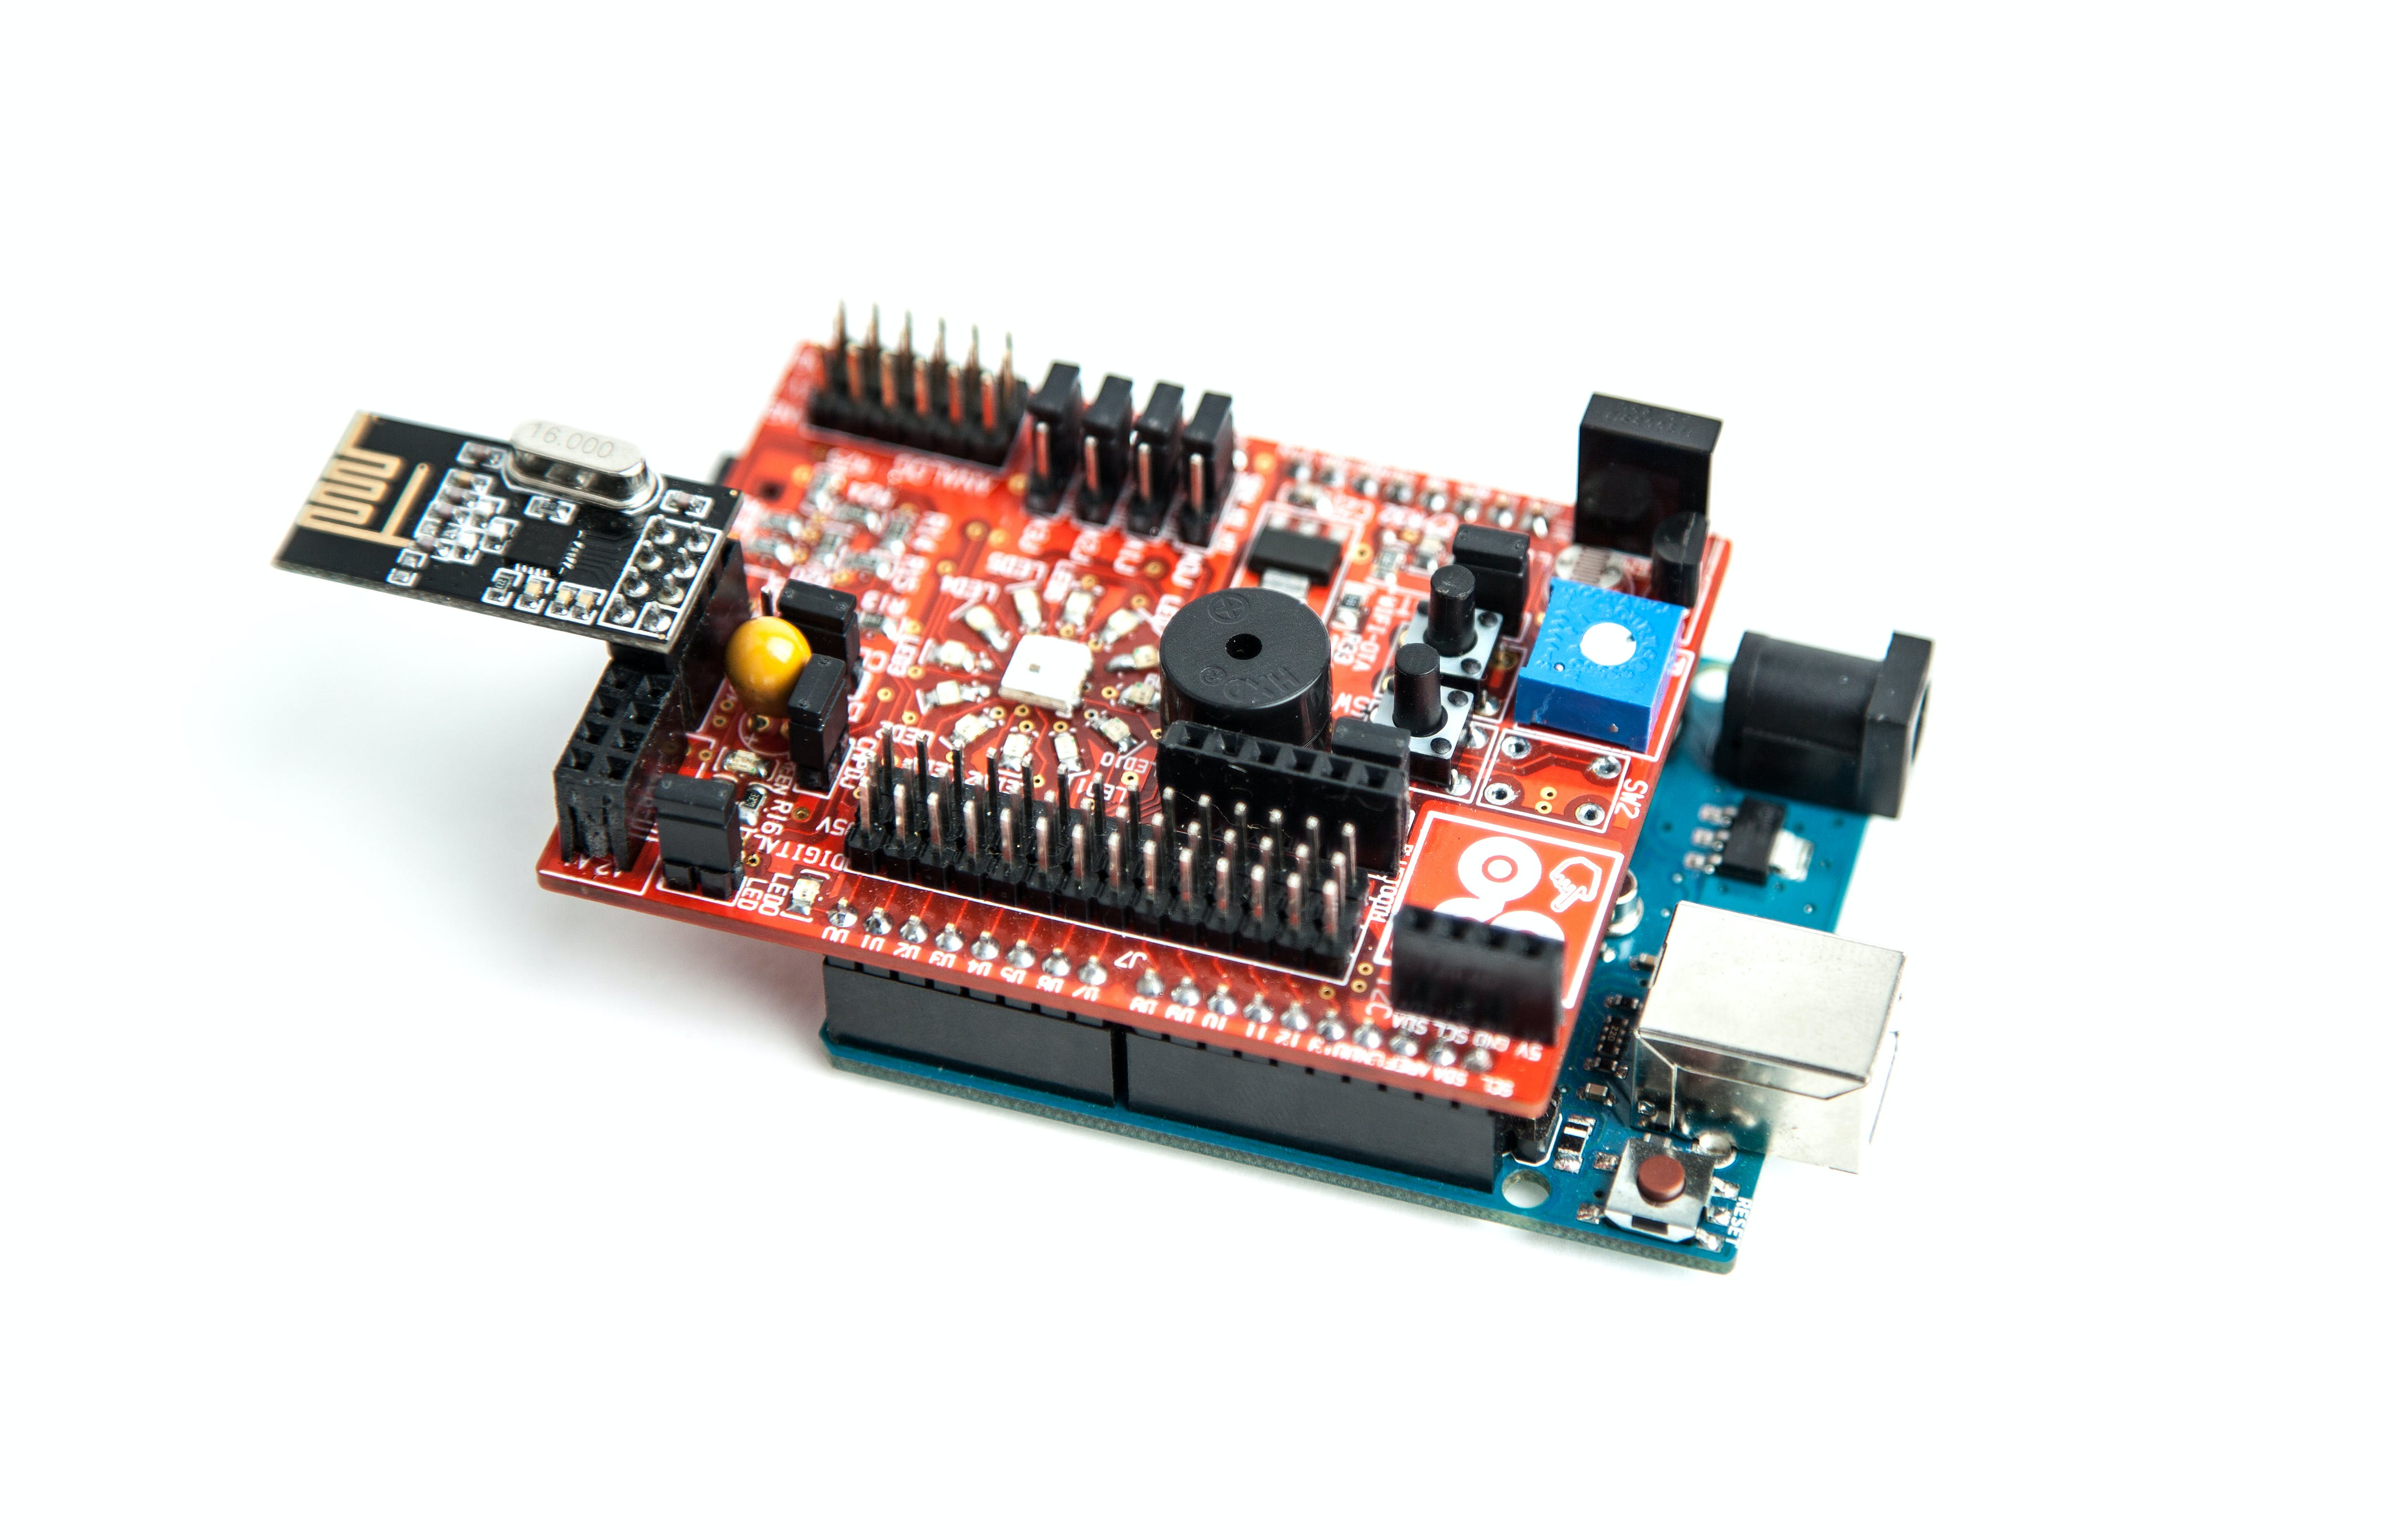 Connect the nrf module to nrf24L01 header.